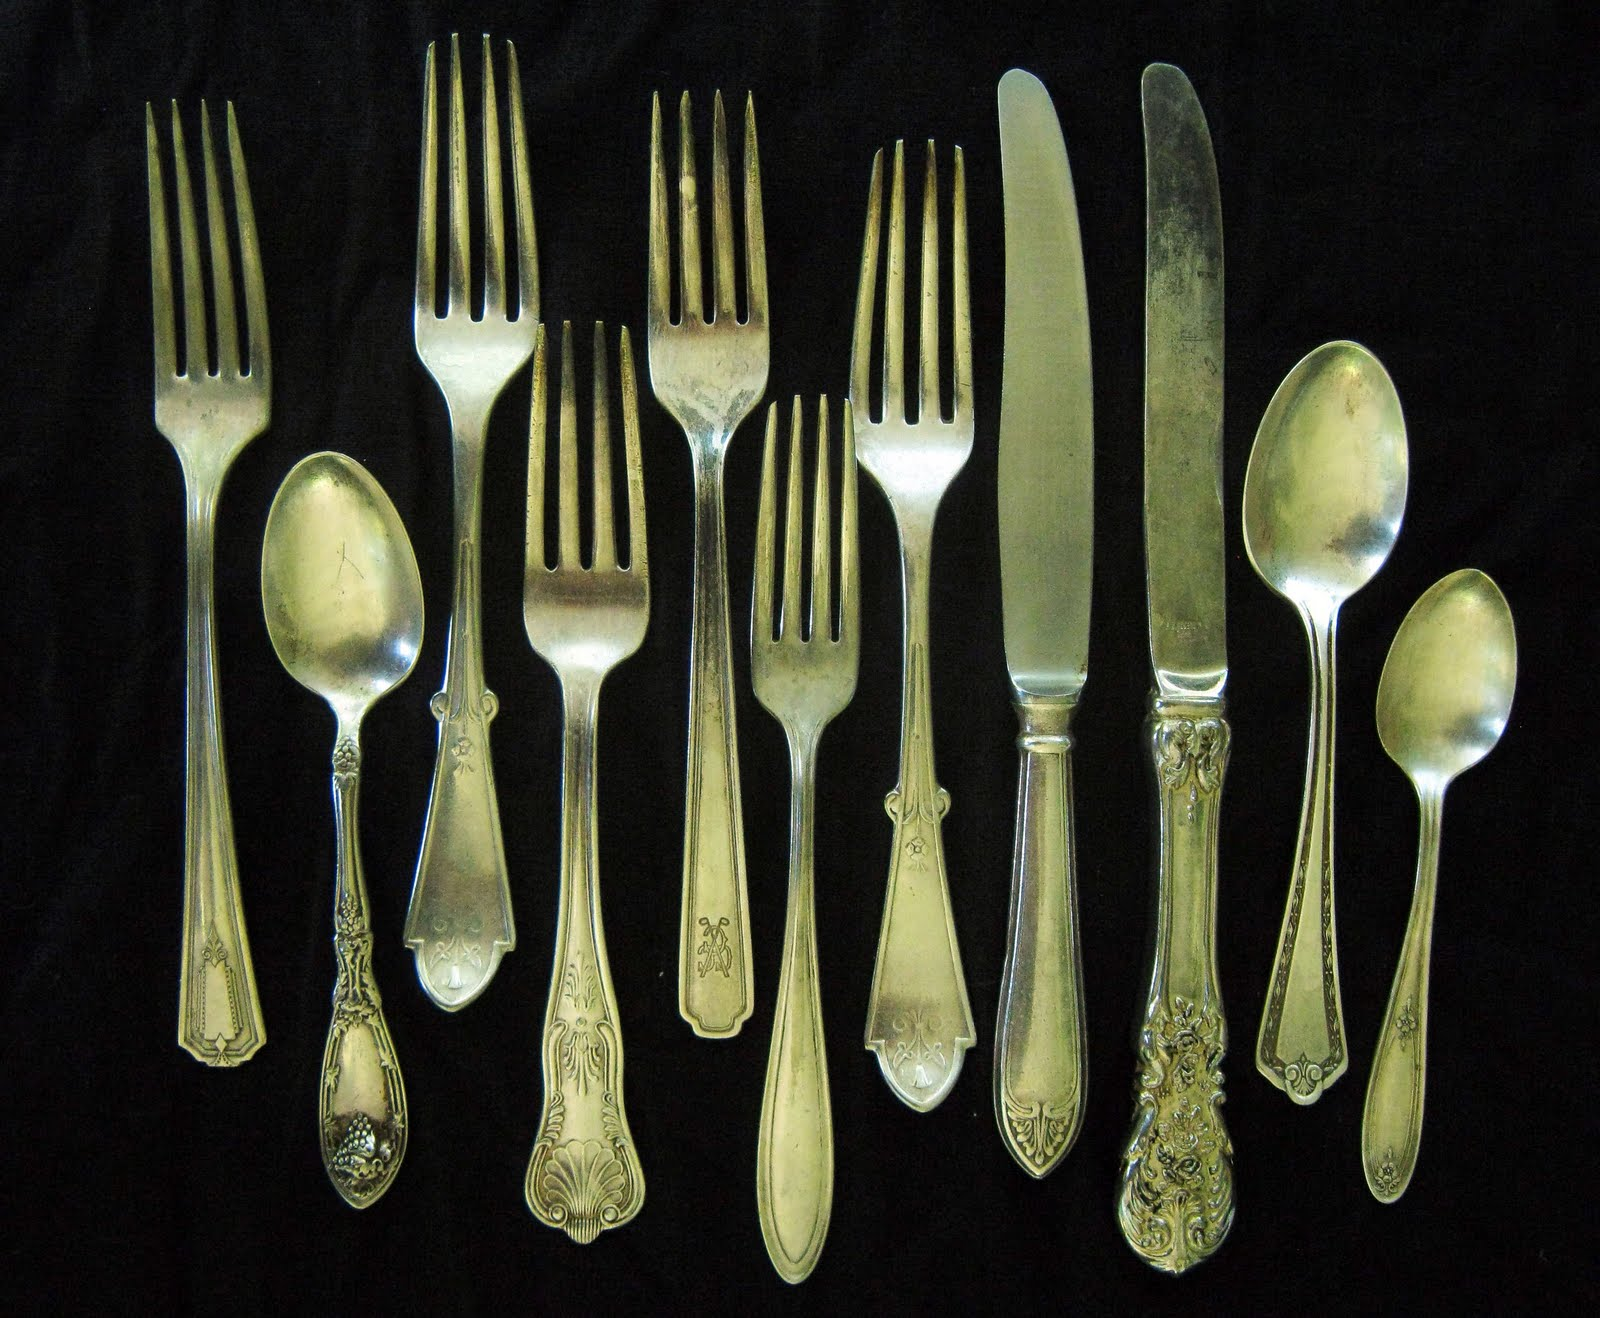 Sorta Fabulous Set The Tone With Vintage Flatware On The